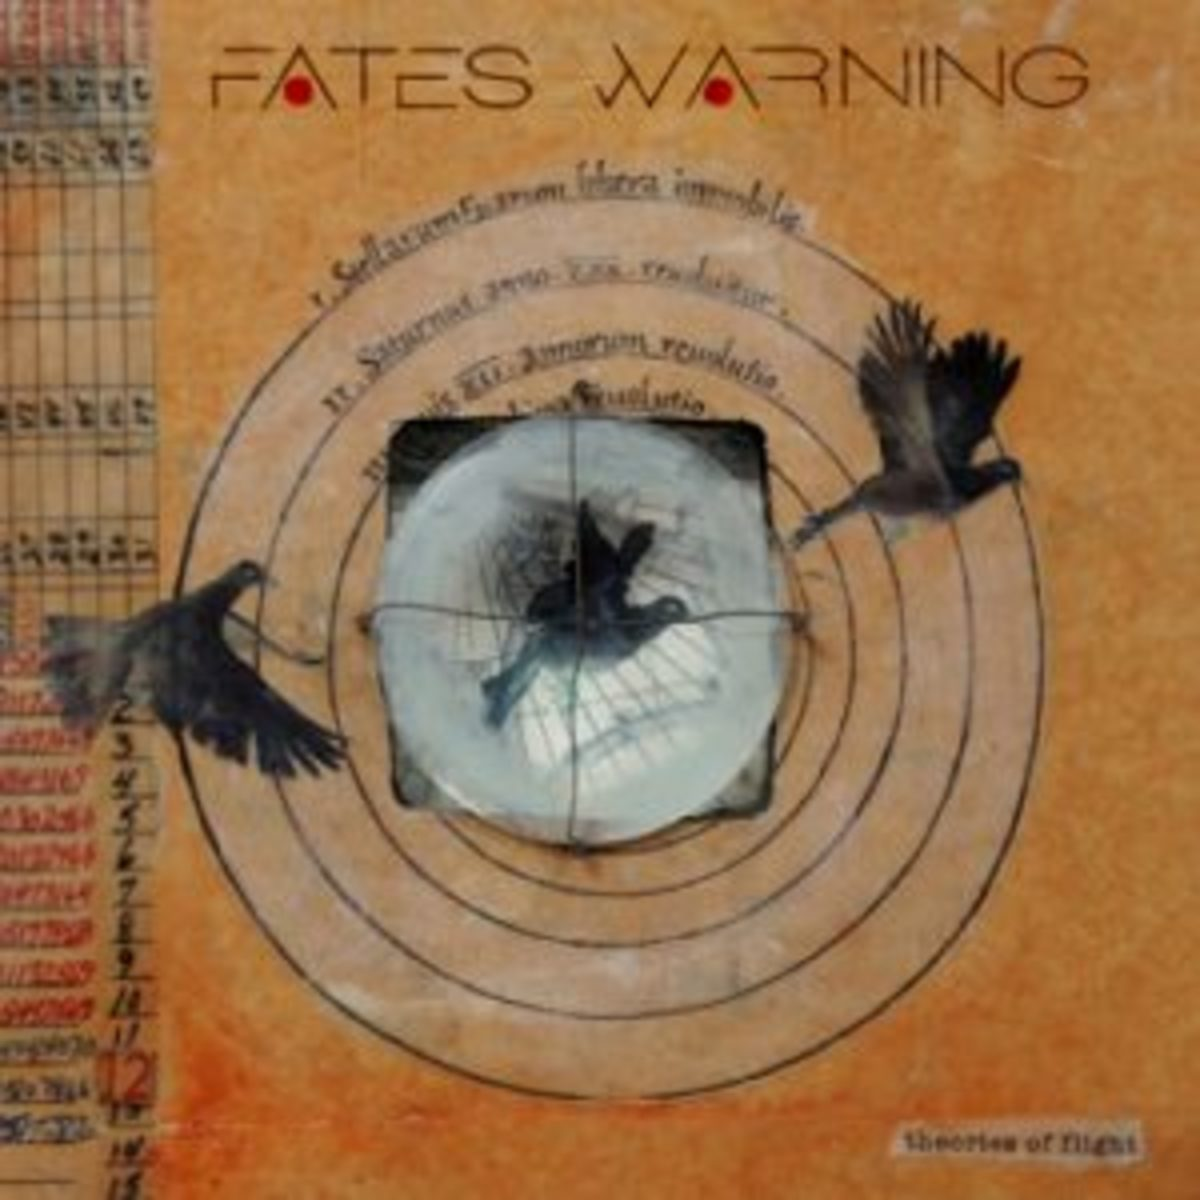 Fates-Warning-Theories-Of-Flight-lo